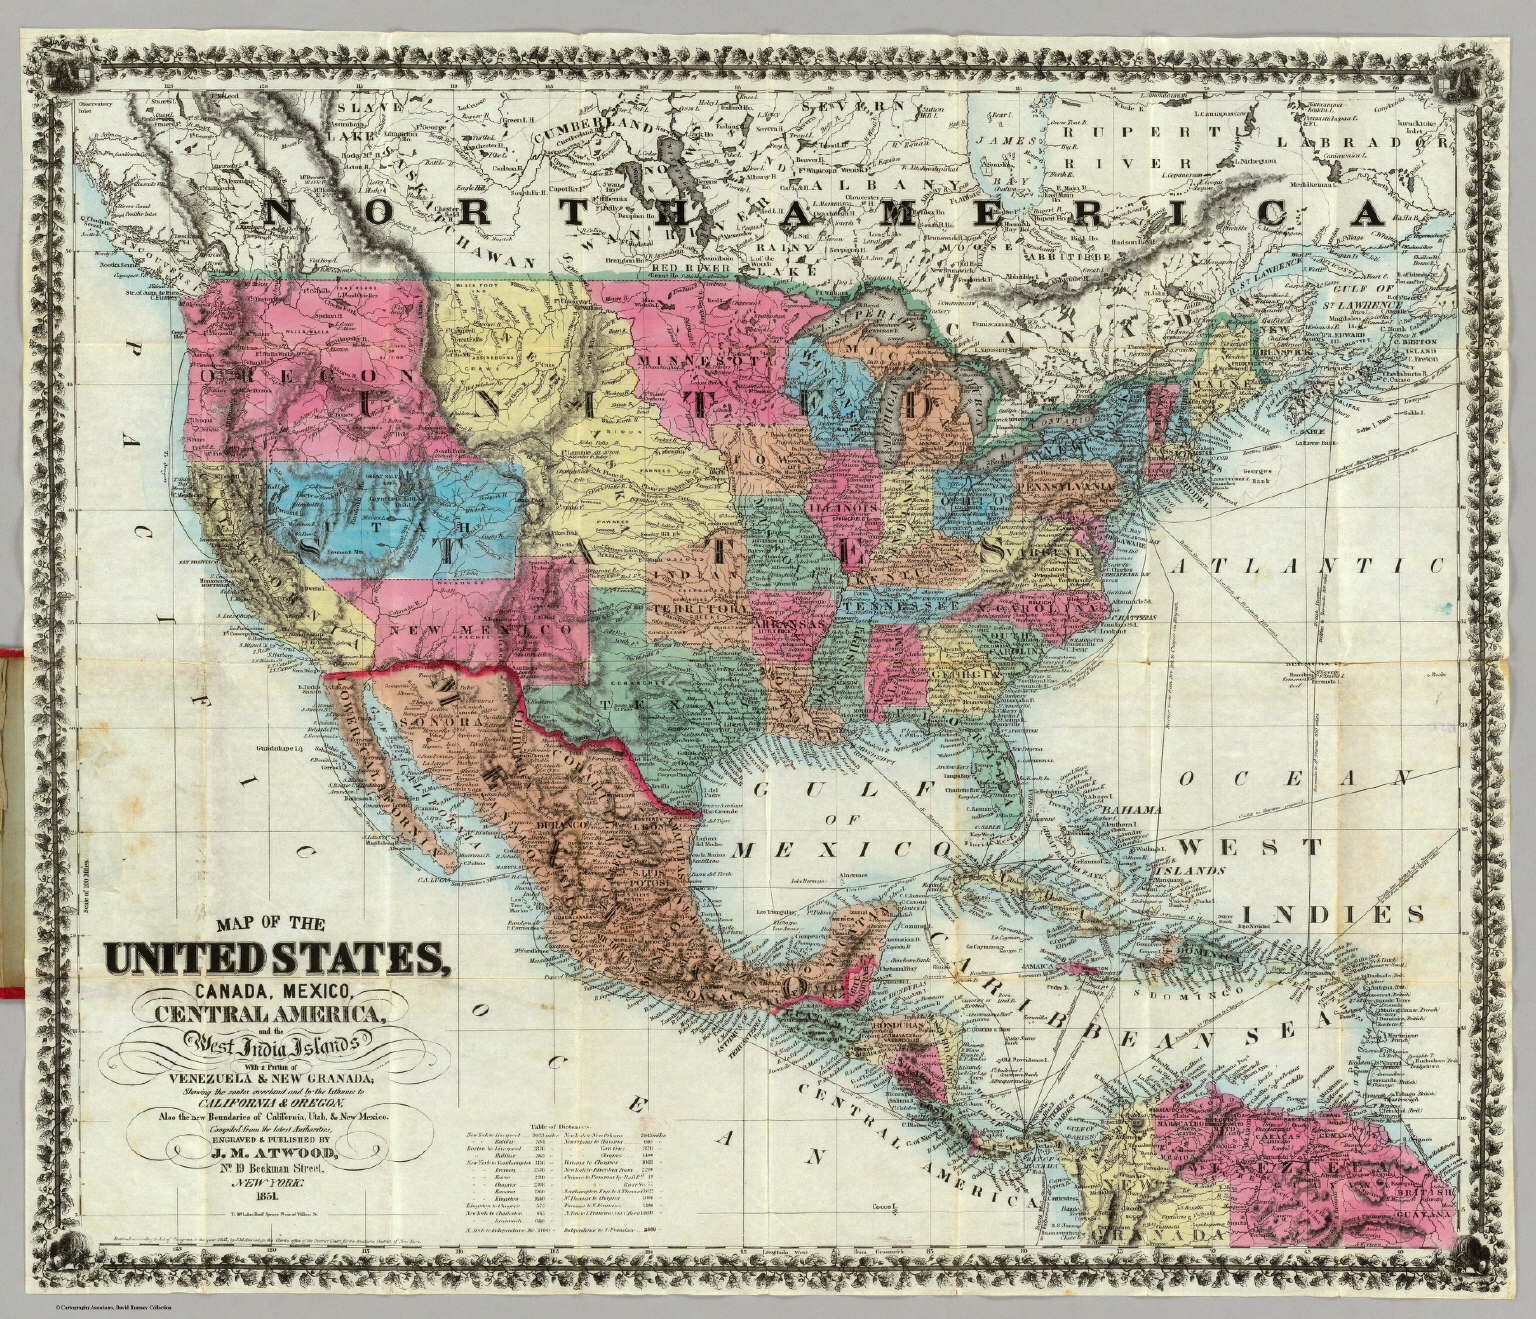 map of the united states canada mexico central america and the west india islands atwood jm 1851